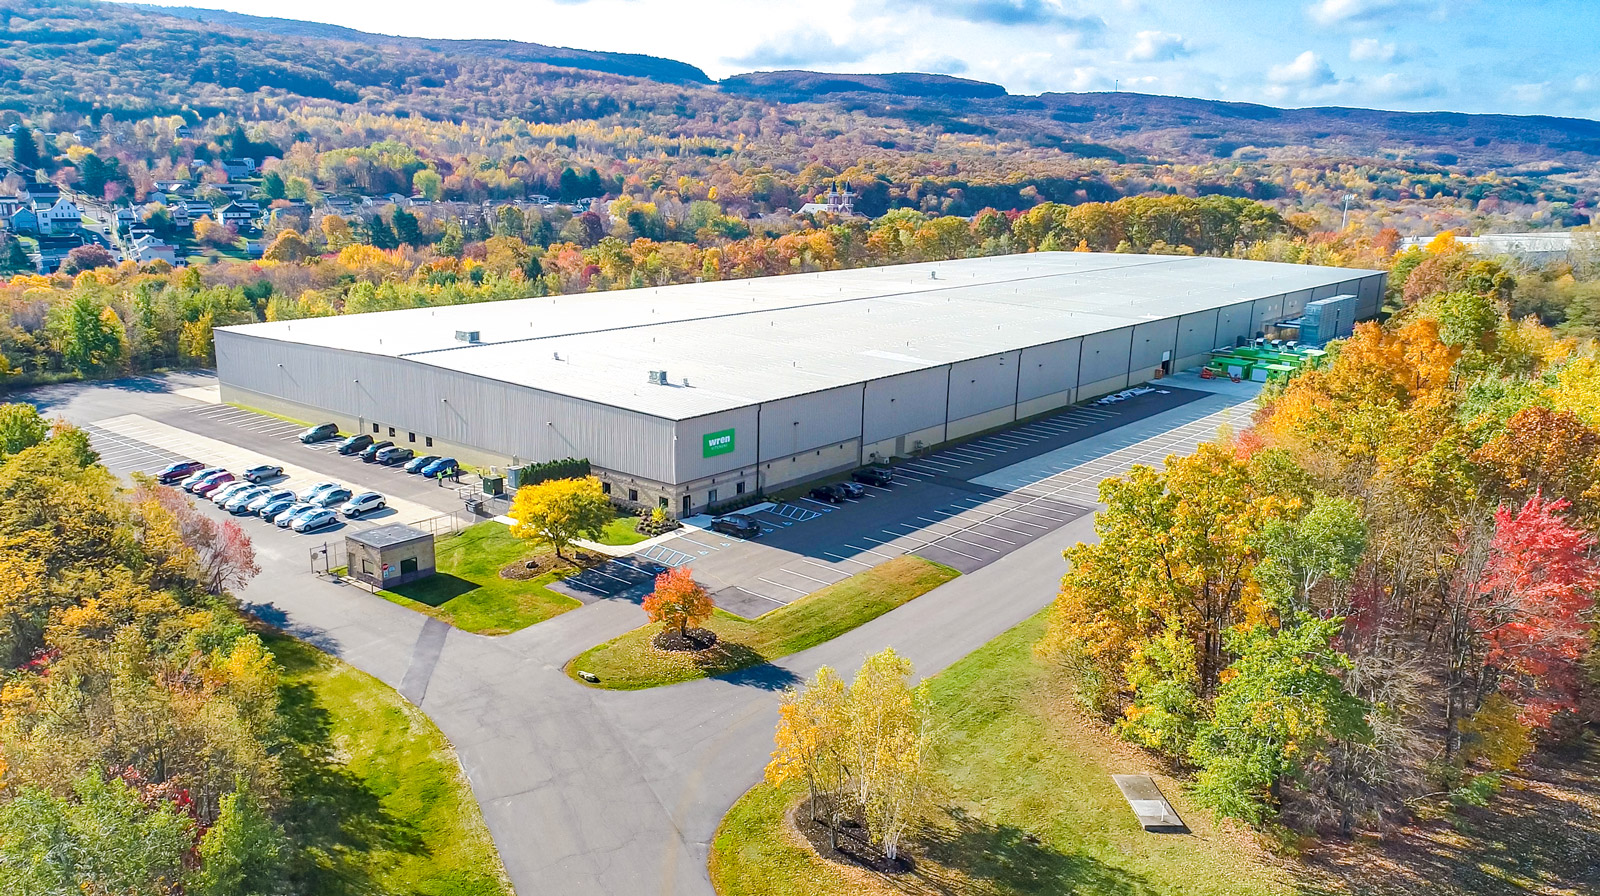 Wren Kitchens to open manufacturing facility in Hanover Township